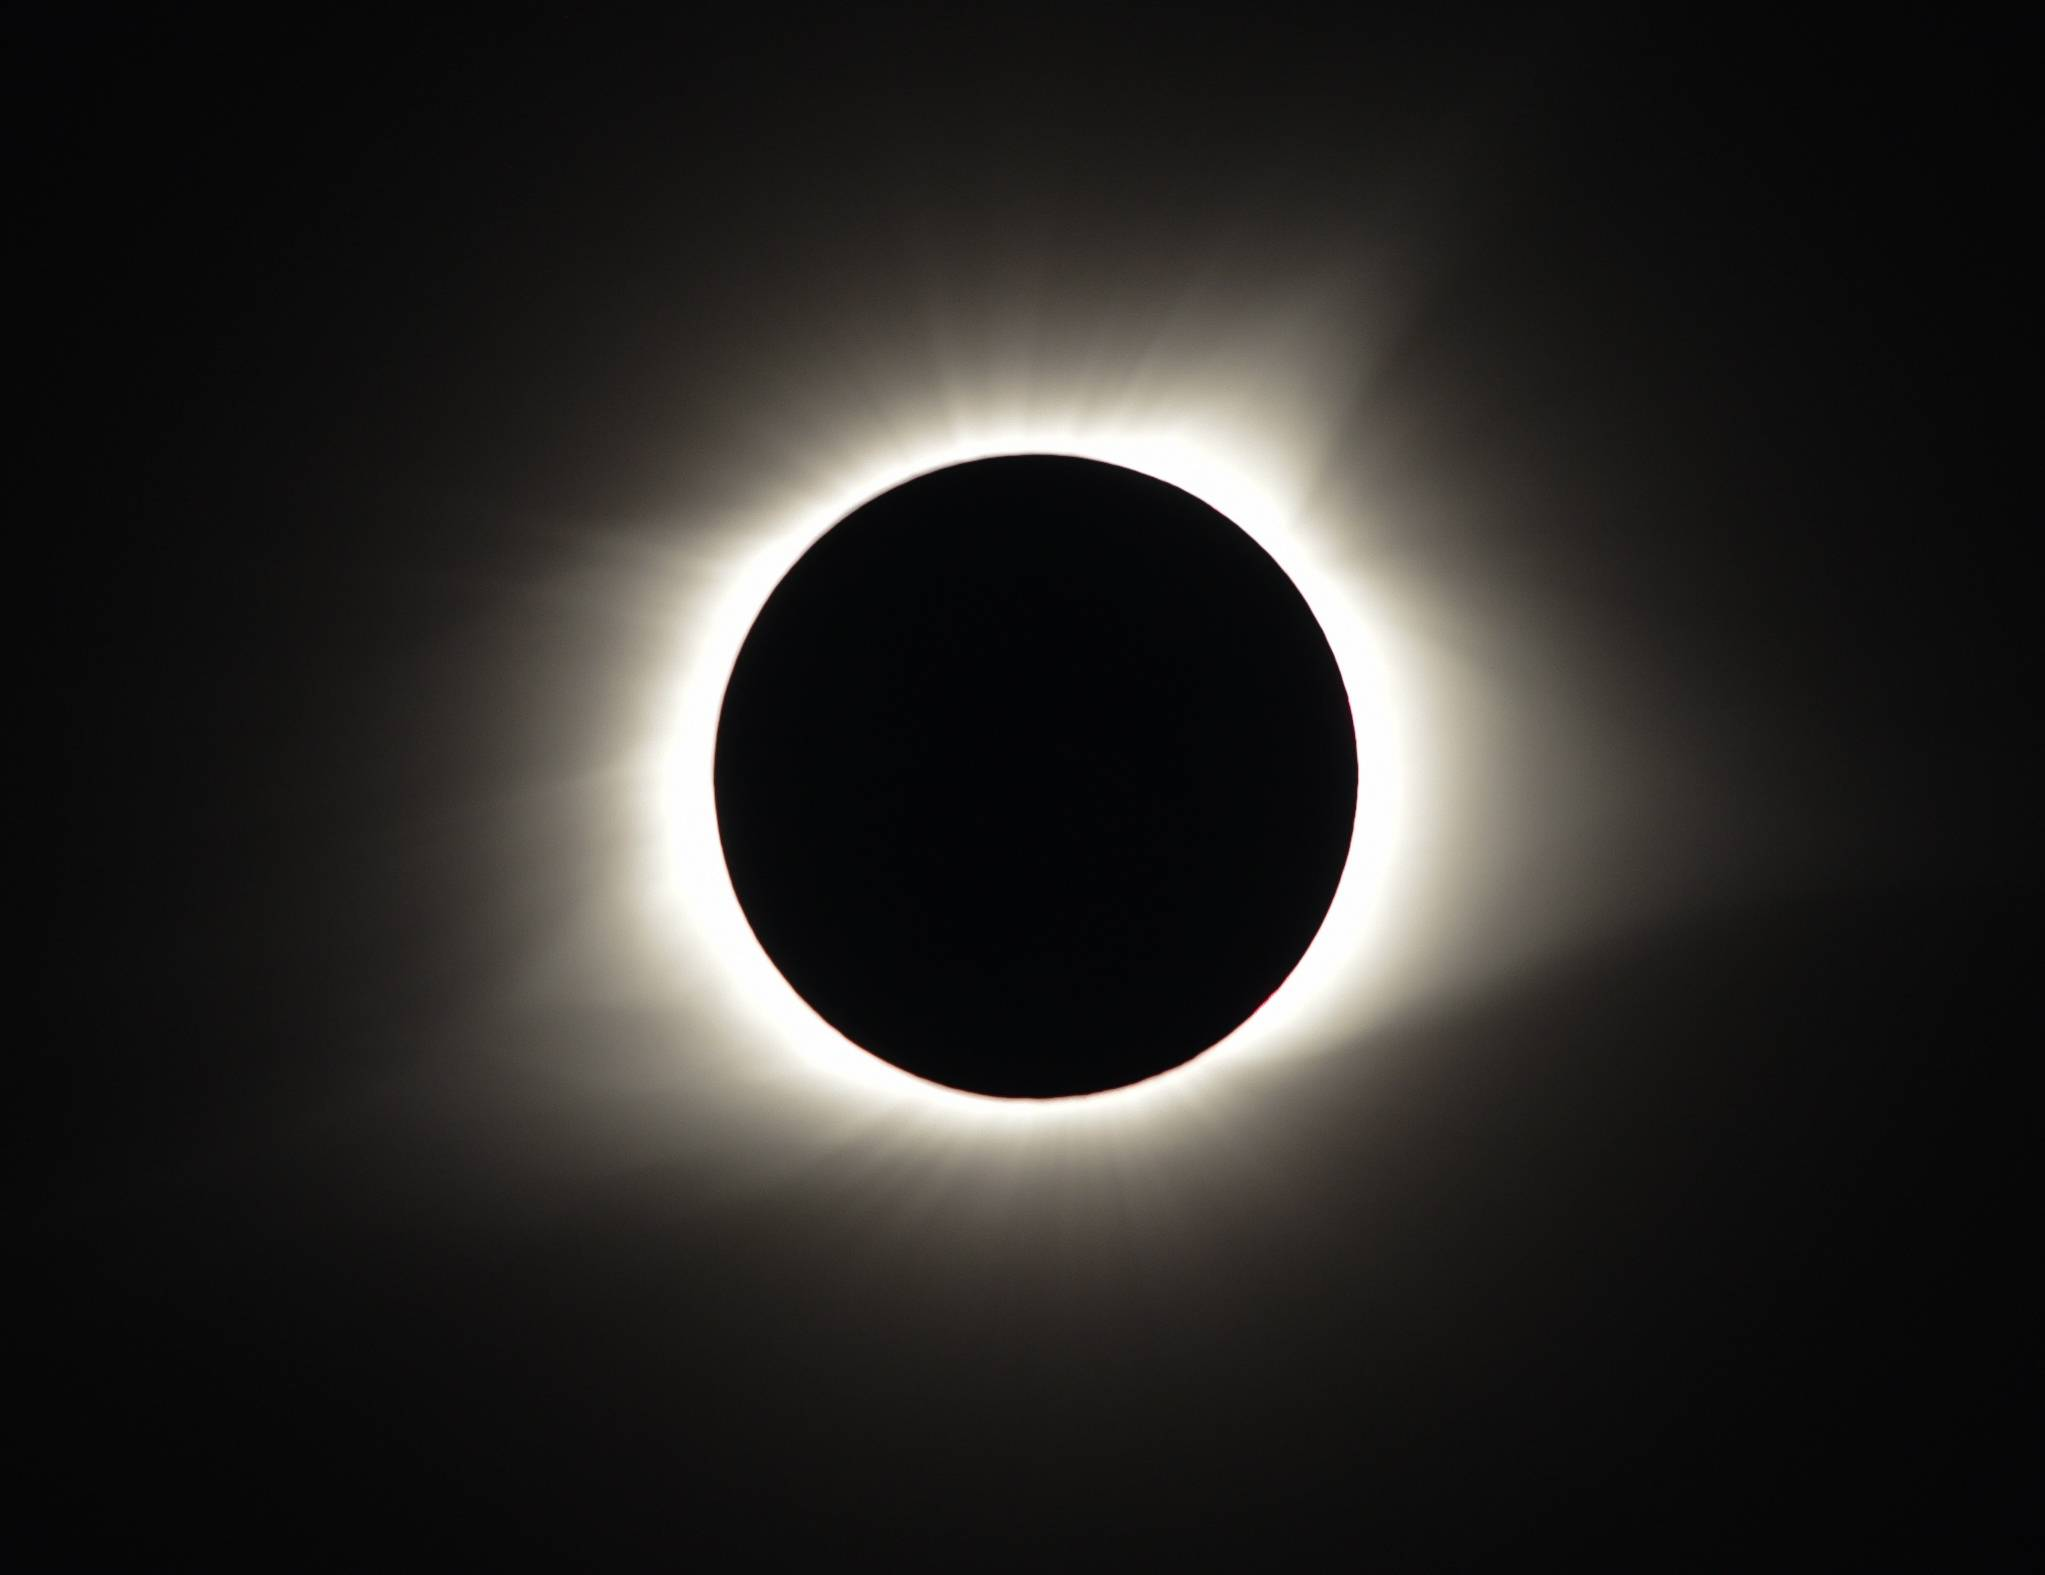 Watch time-lapse video: Eclipse brings darkness over southern Illinois